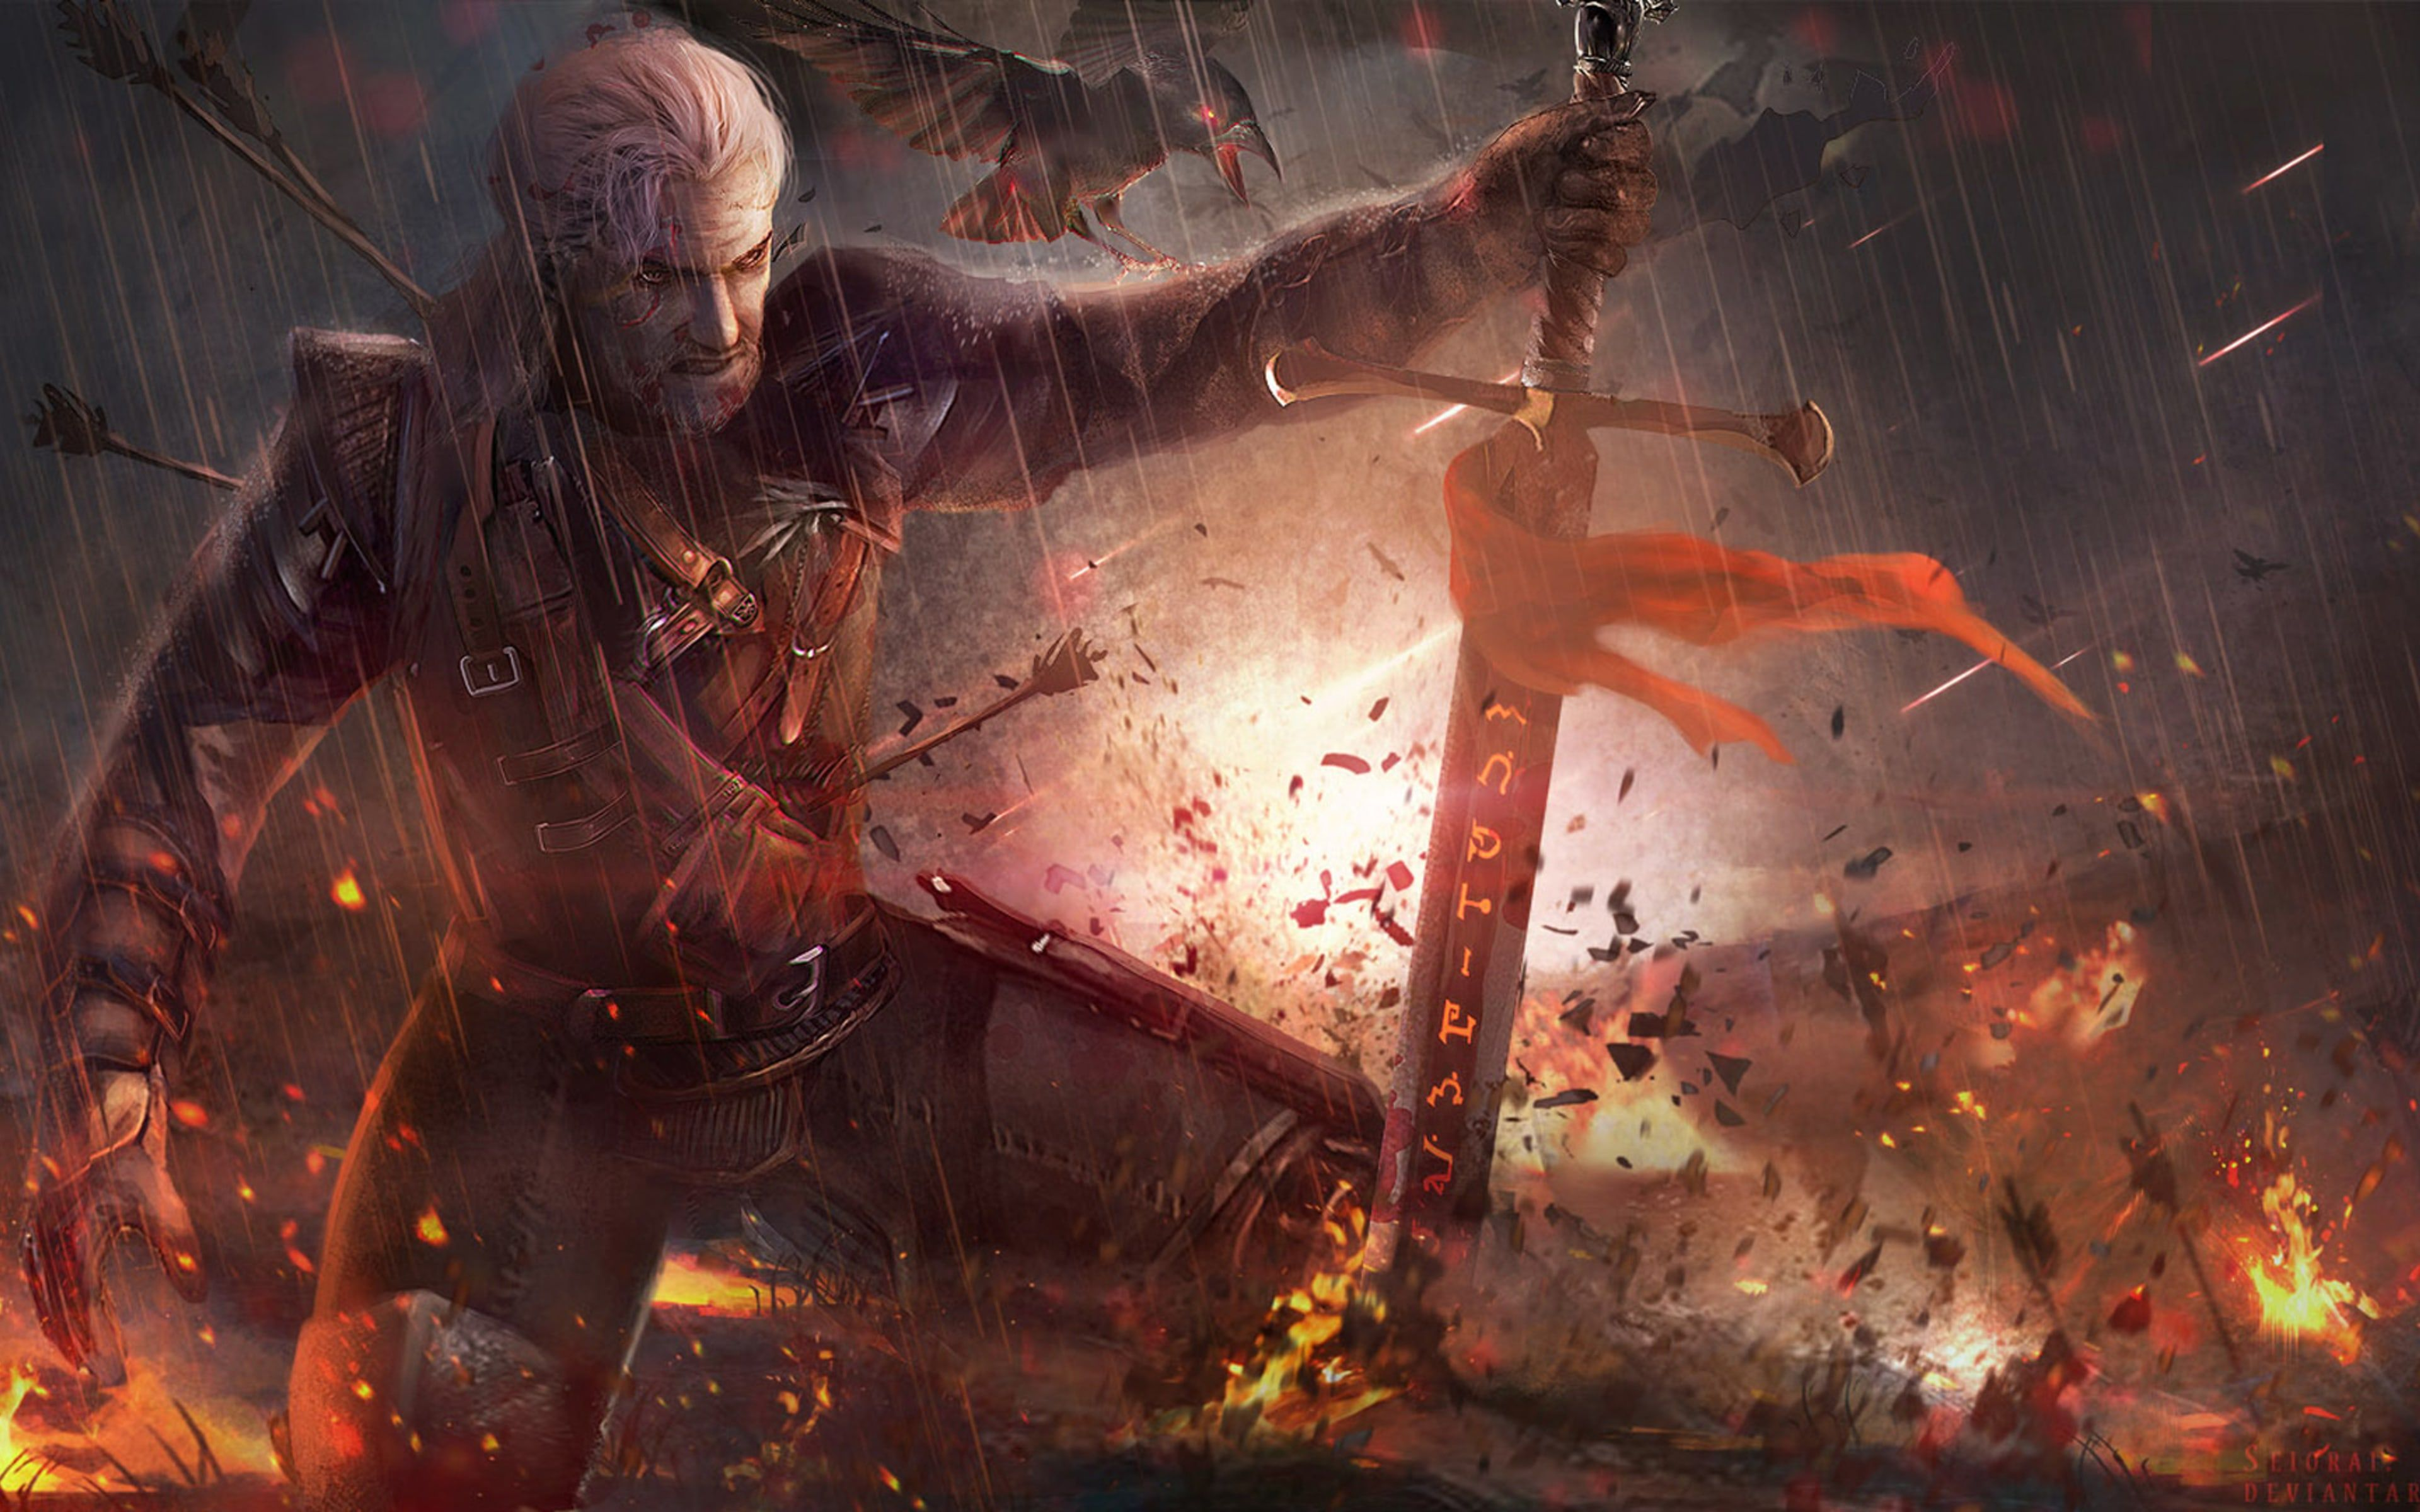 Domain For Sale Hd Cool Wallpapers The Witcher The Witcher 3